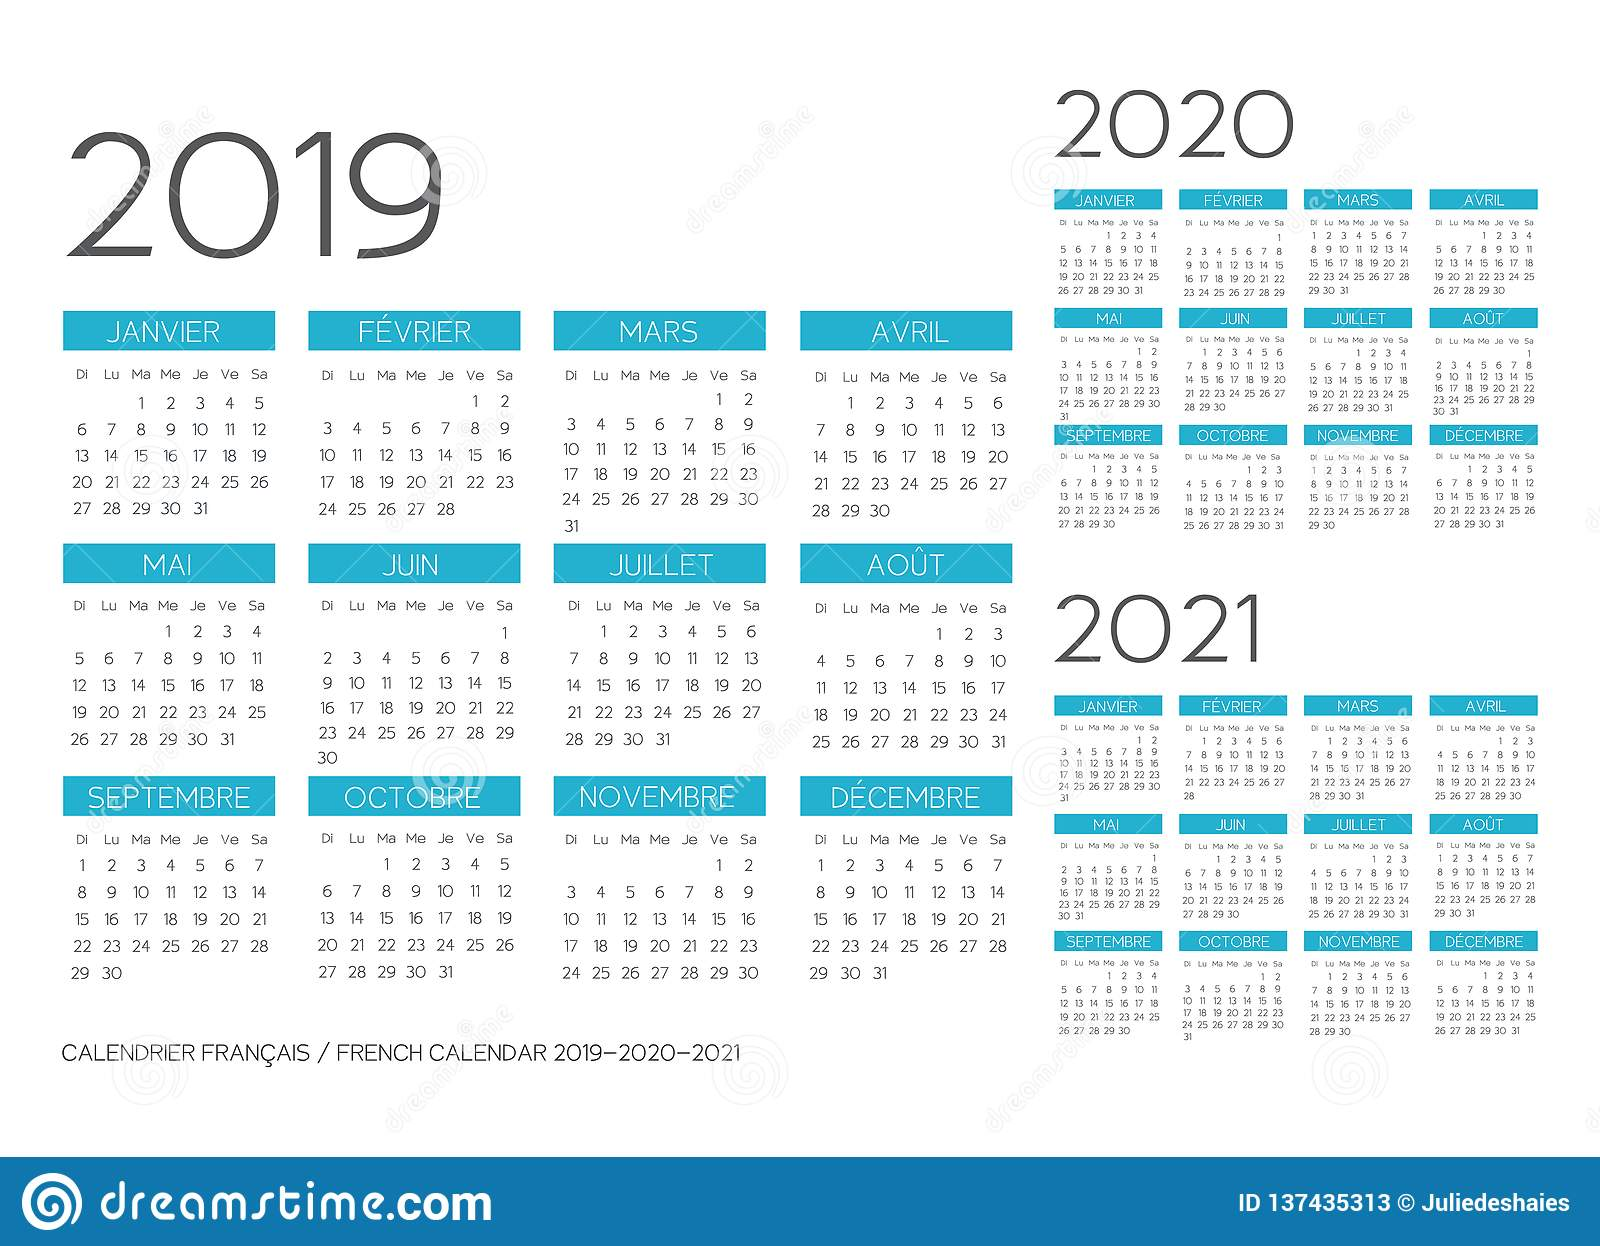 Calendario Castellina Pasi.Calendario Francese 2020